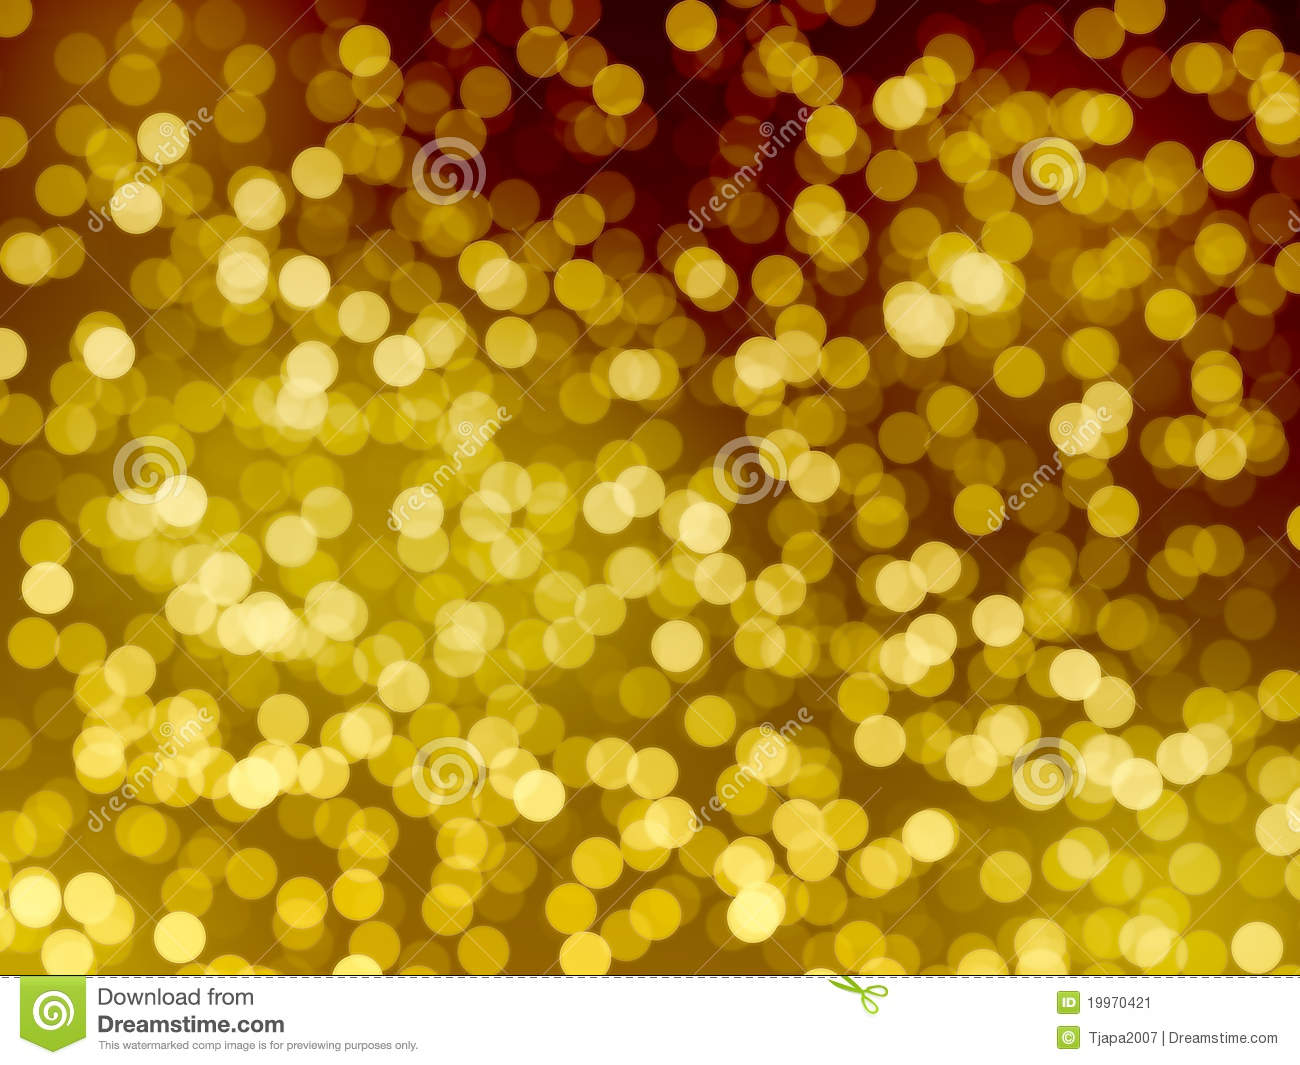 Gold Lights Backgrounds Gold lights blur background